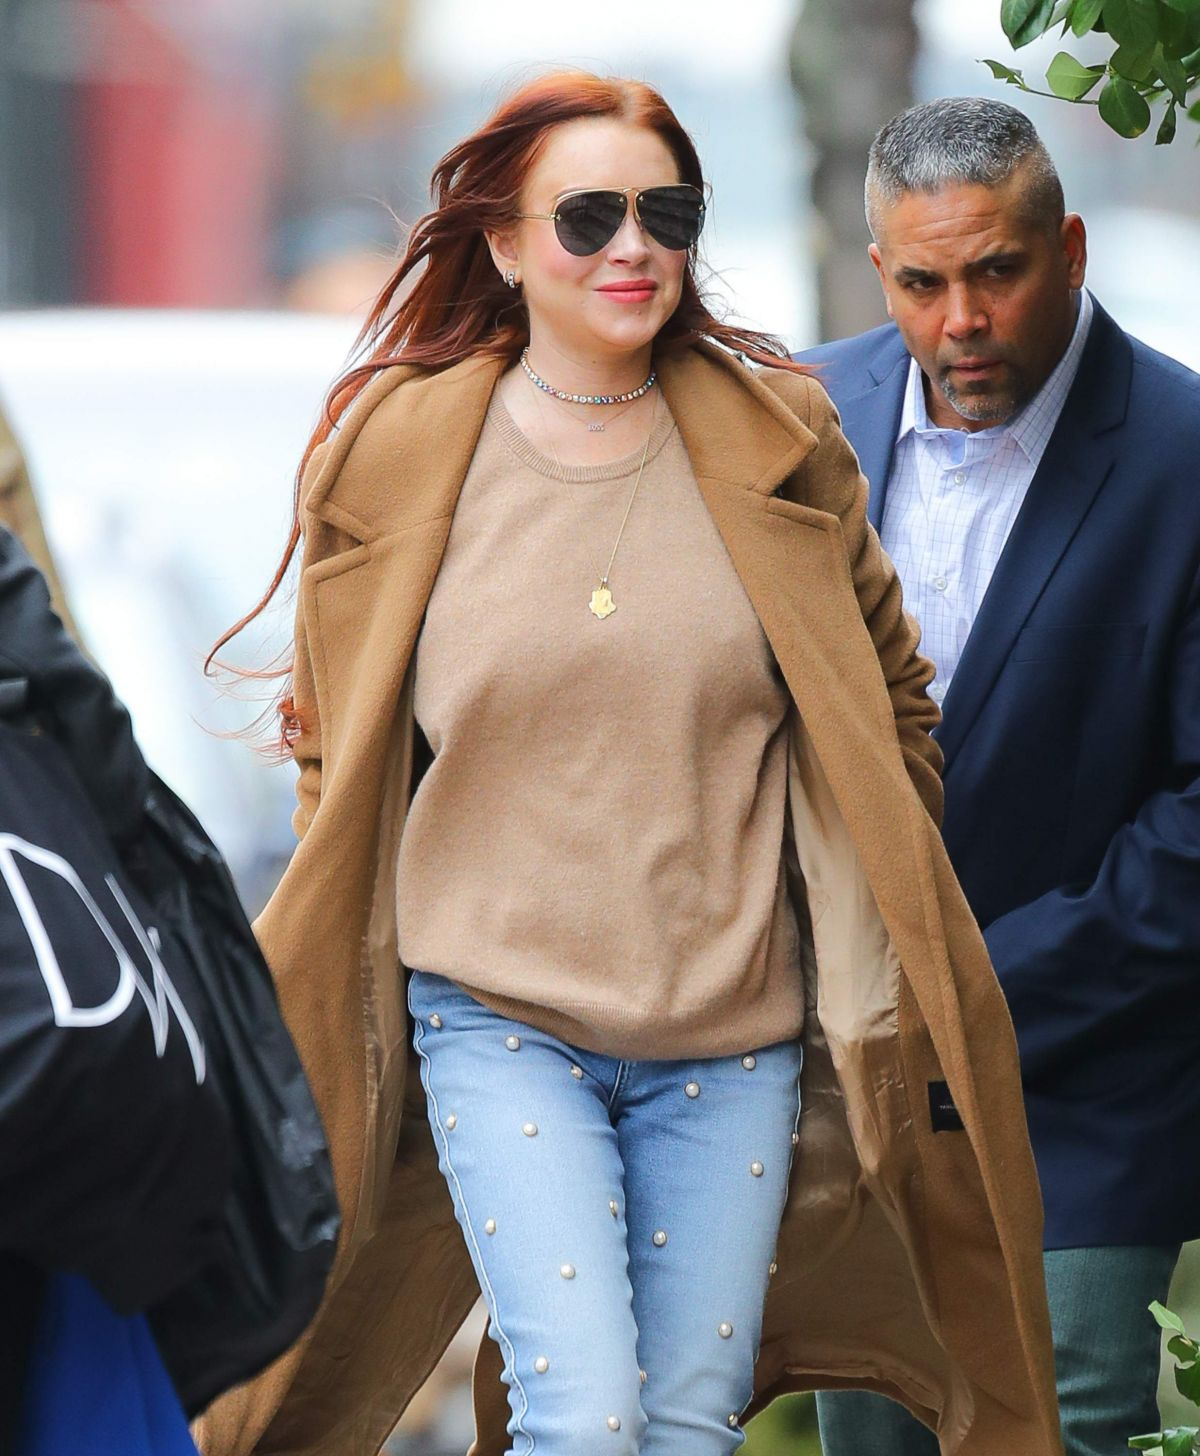 Flat In New York: LINDSAY LOHAN Leaves Her Apartment In New York 01/10/2019